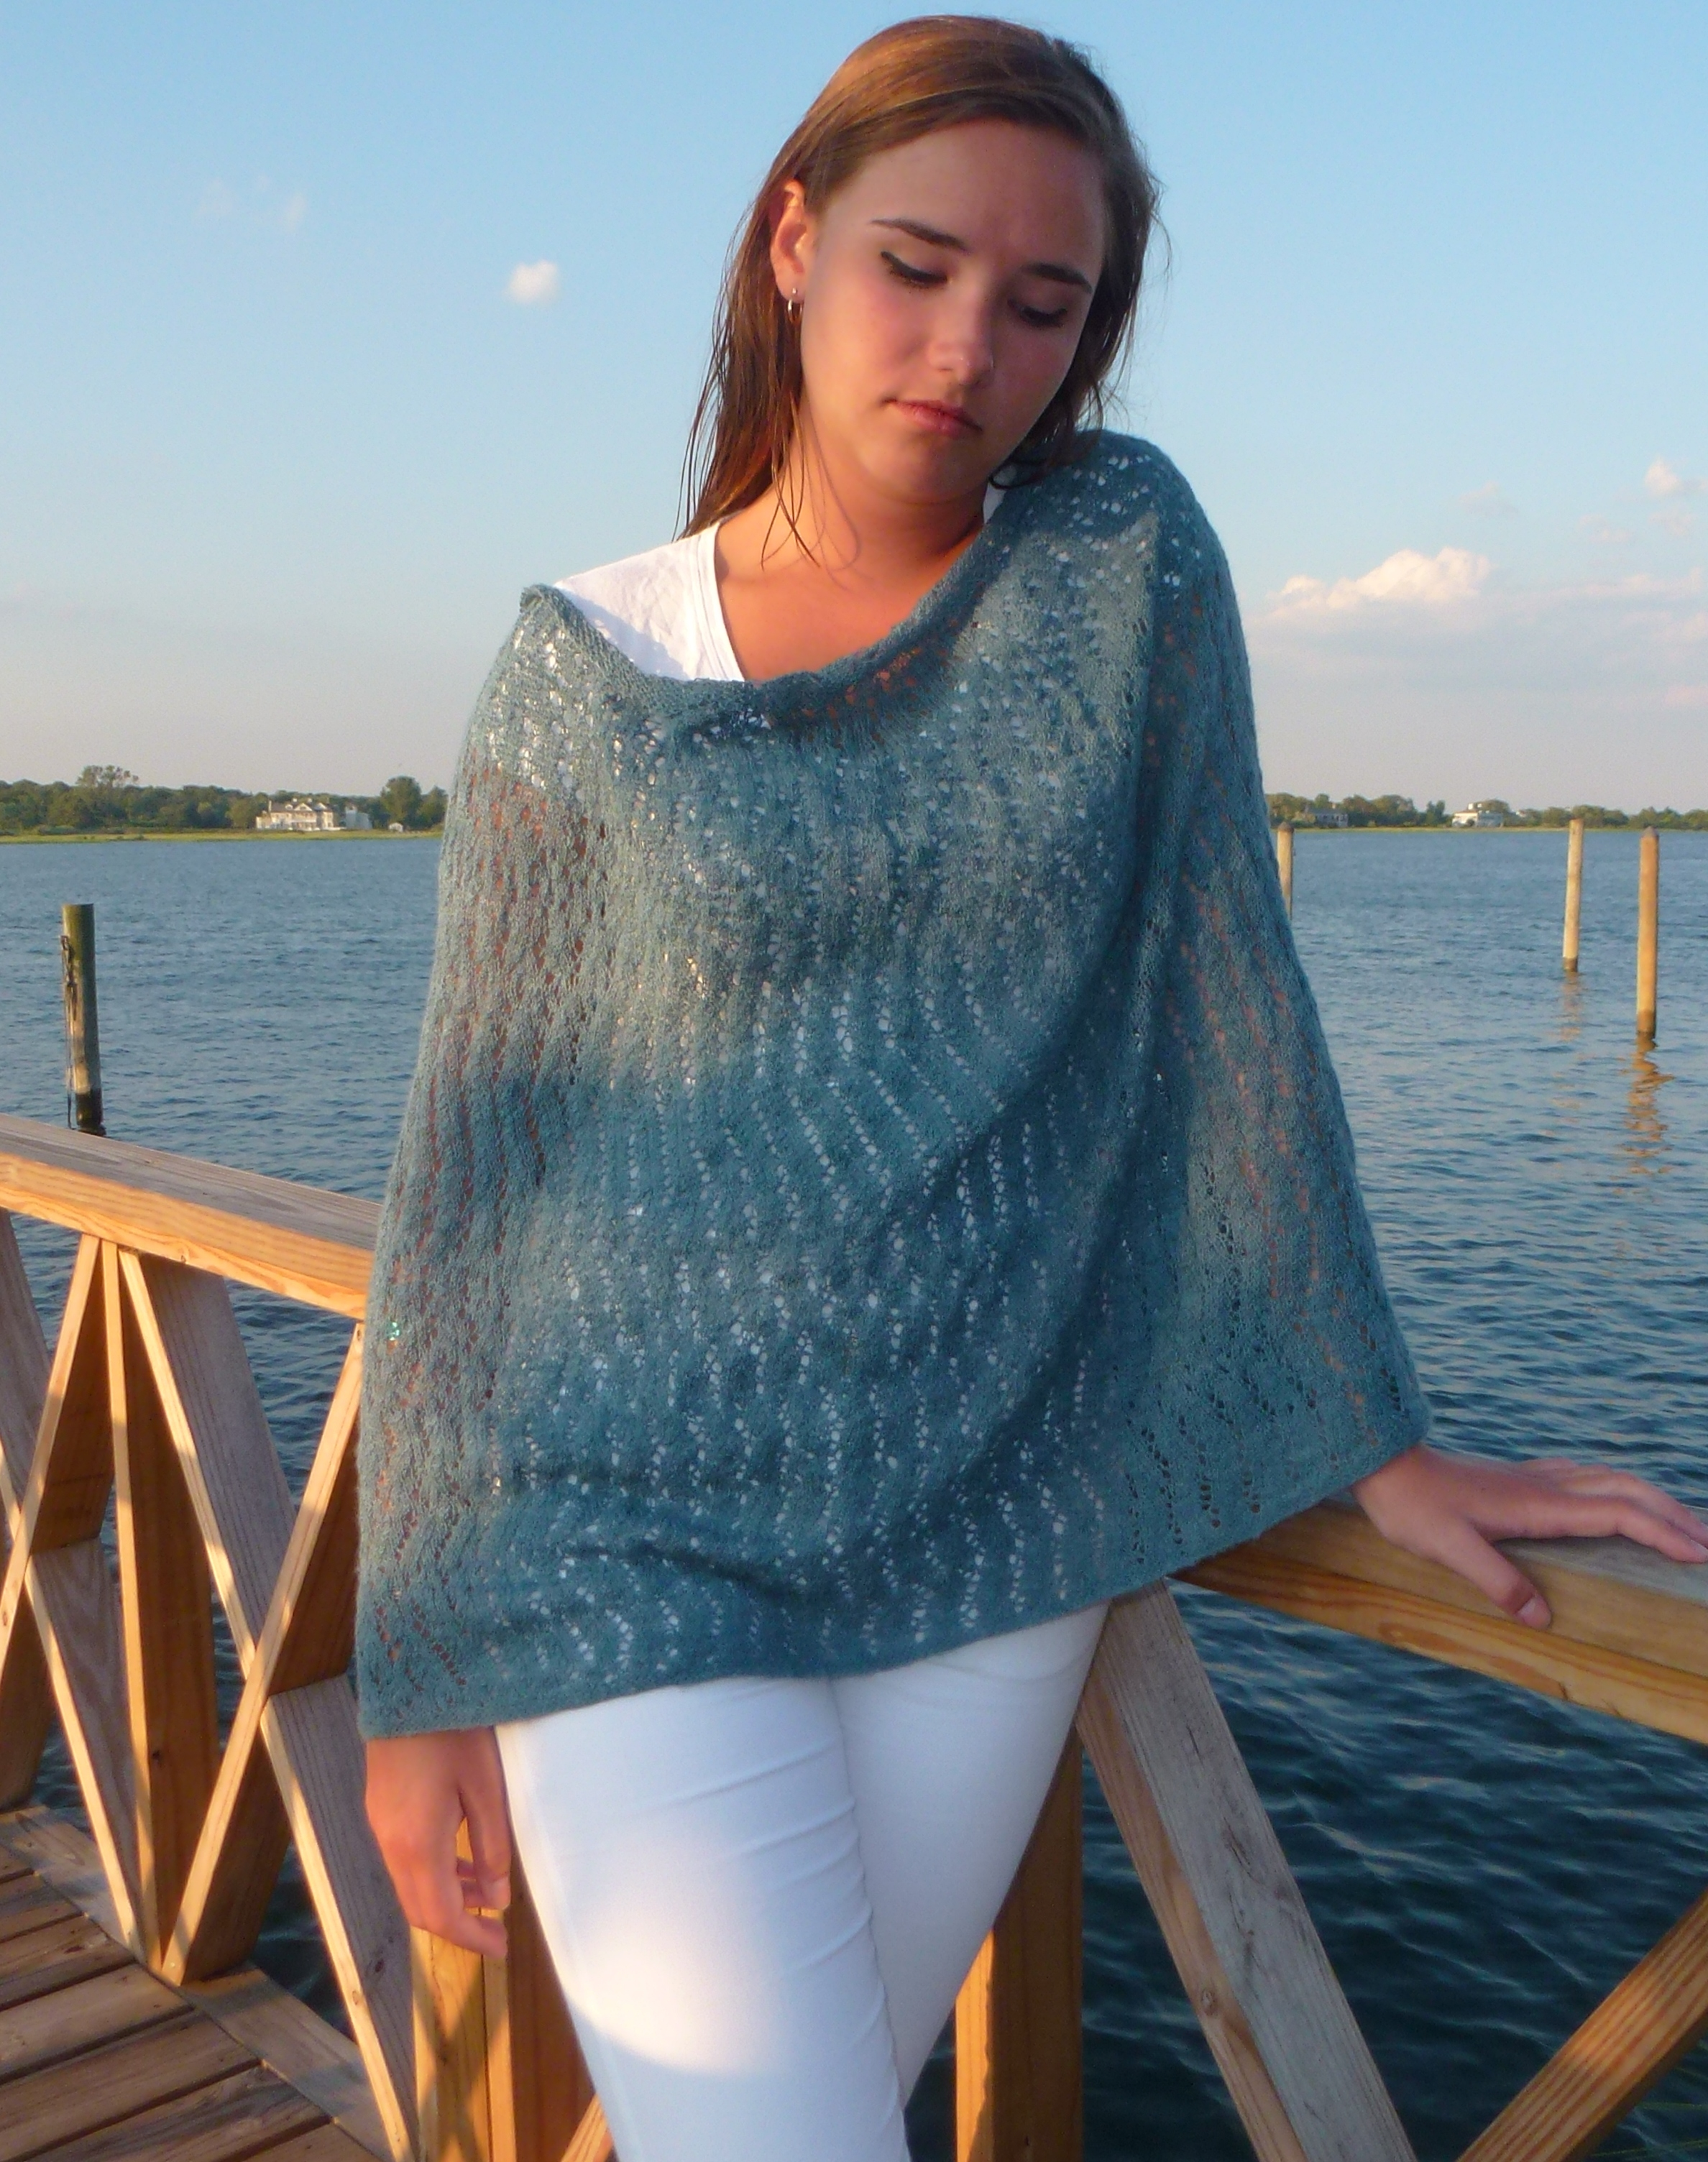 Lace Knitting on the Beach | Ehdknits